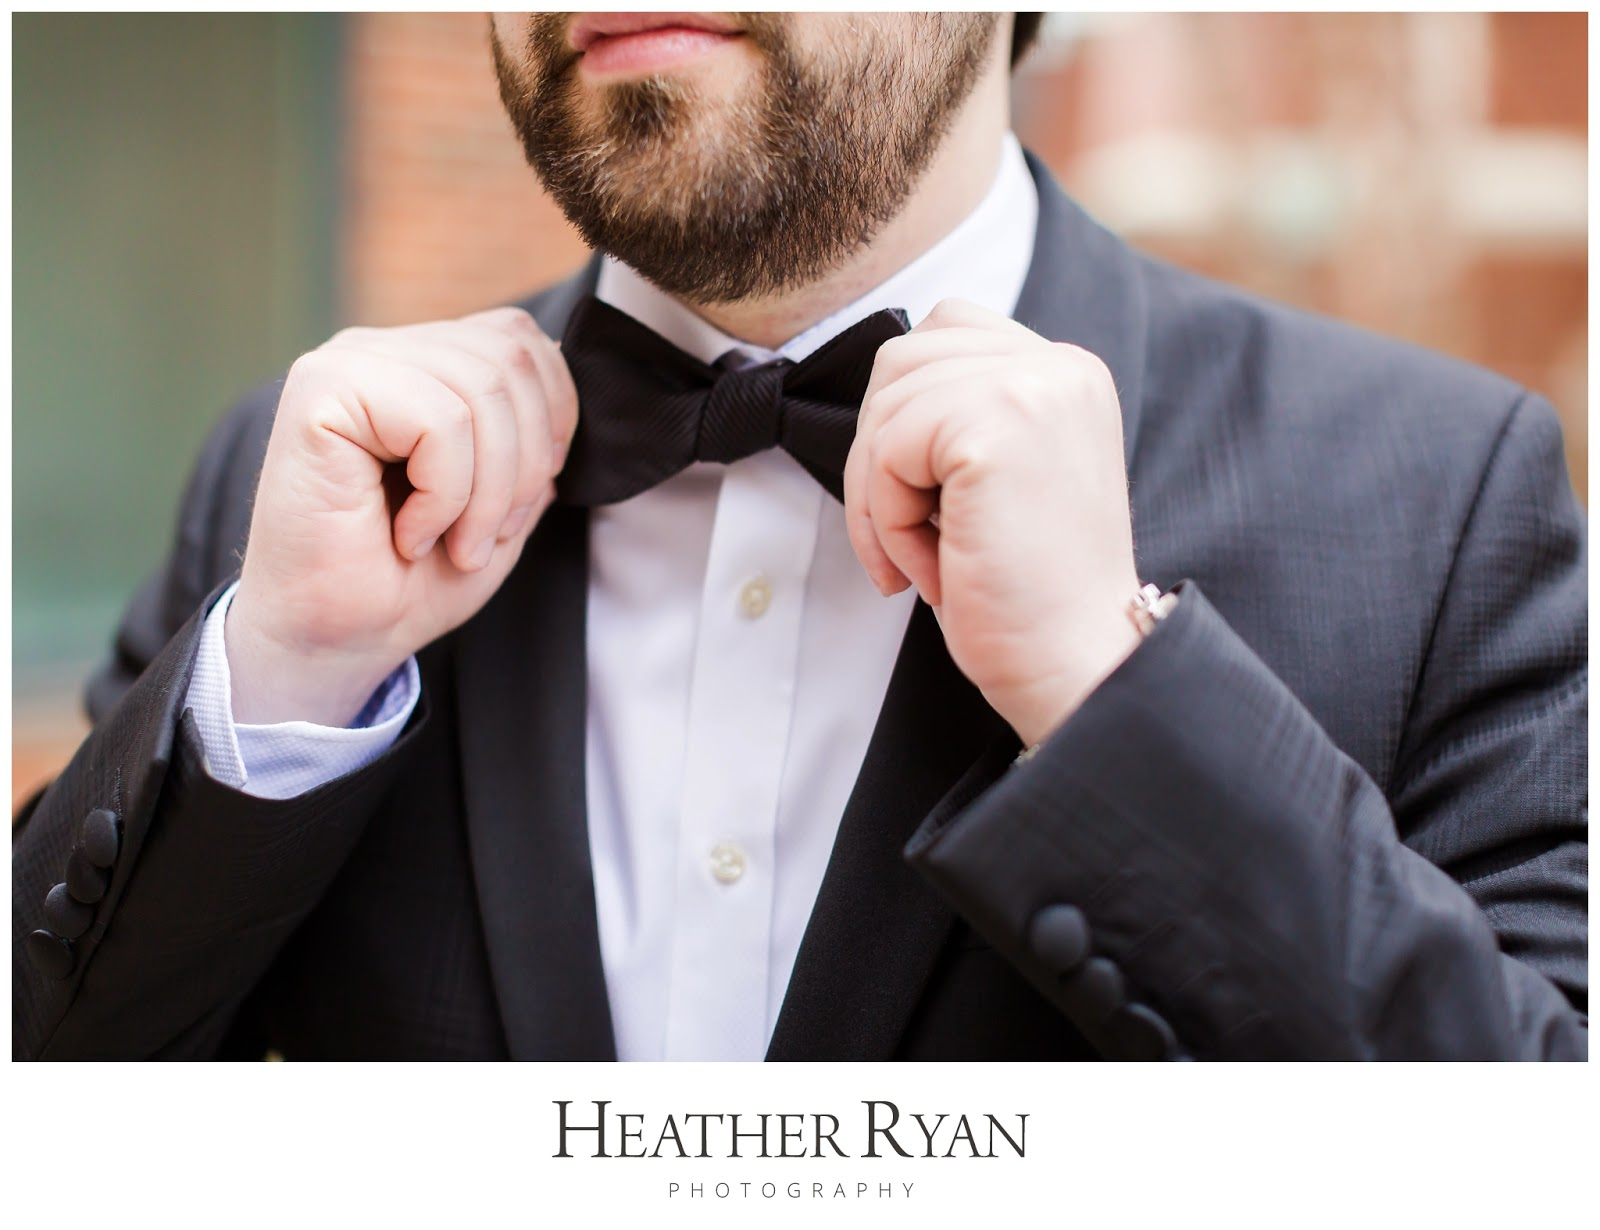 Ritz-Carlton Georgetown Wedding | Photos by Heather Ryan Photography